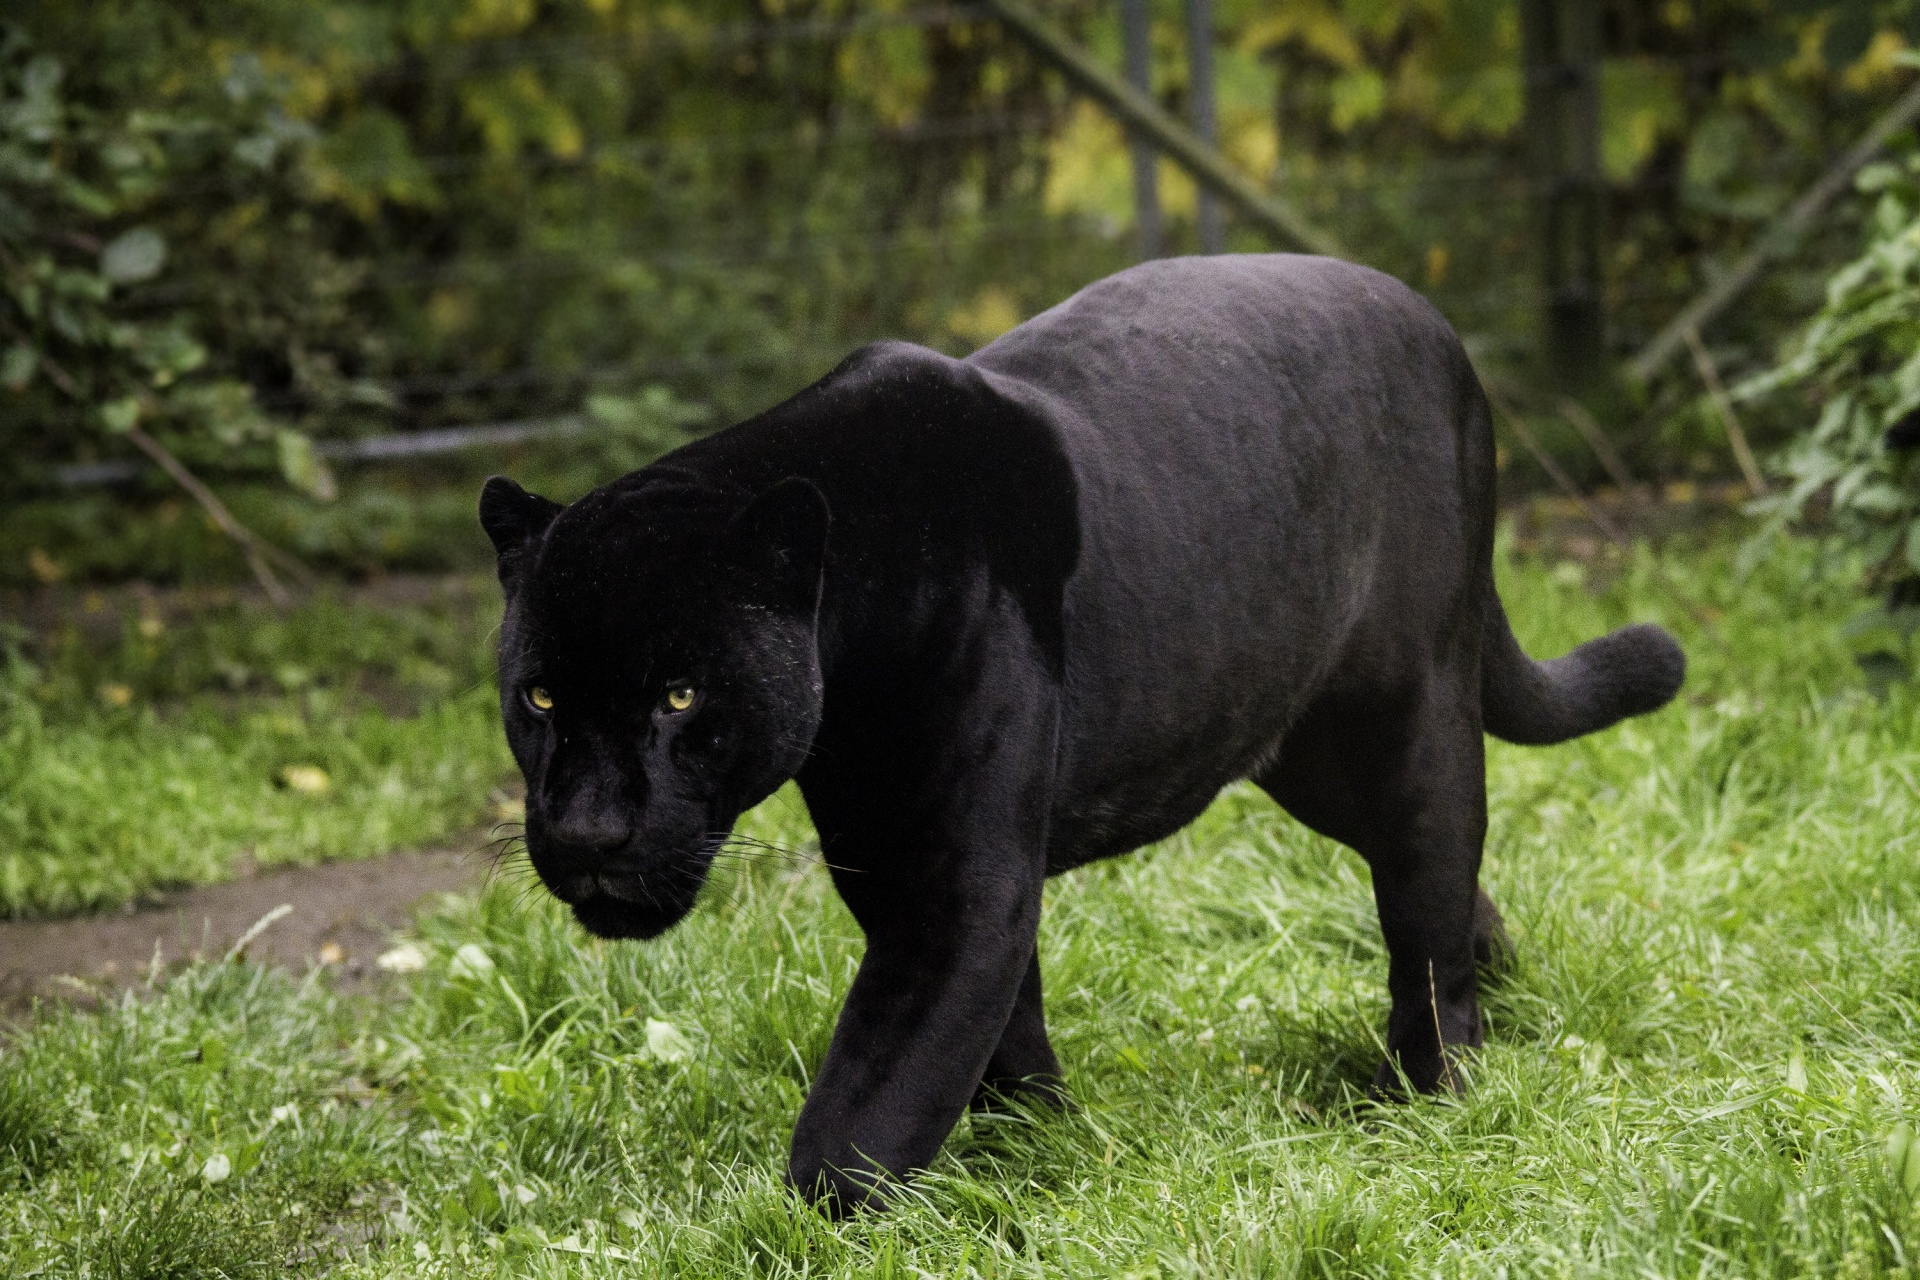 Black Panther Habitat